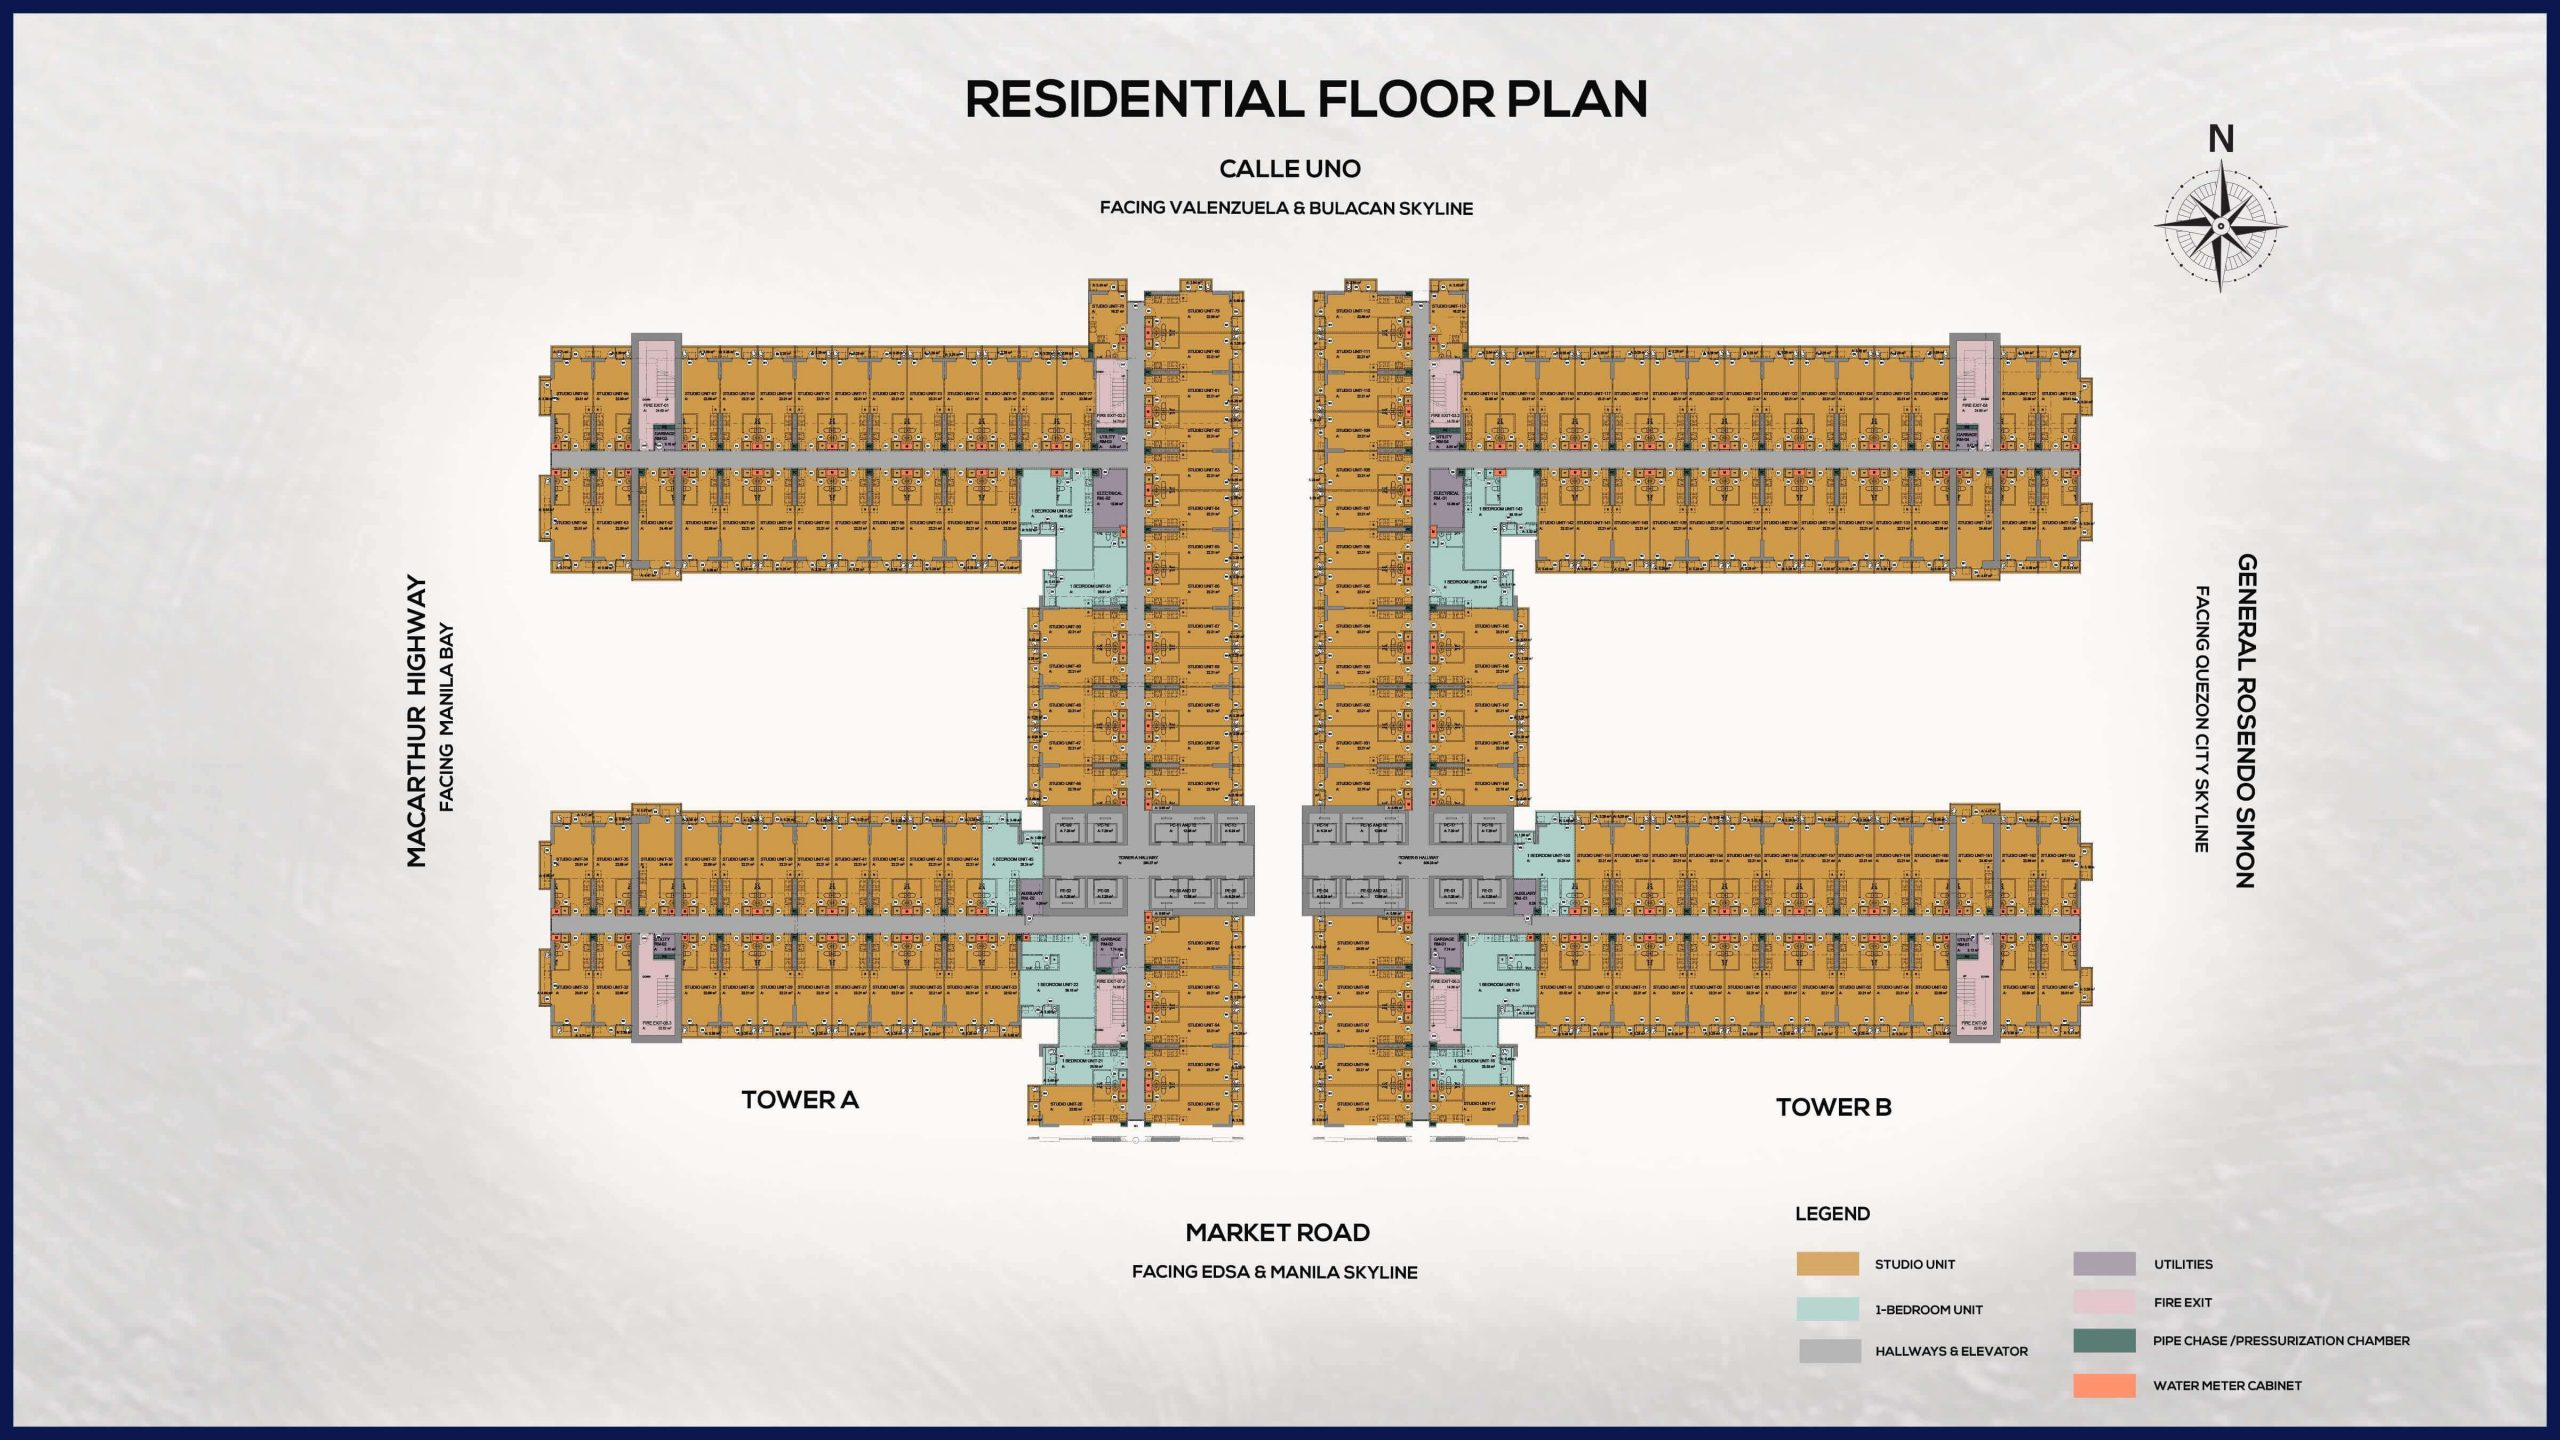 Victoria Sports Tower Monumento Floorplan